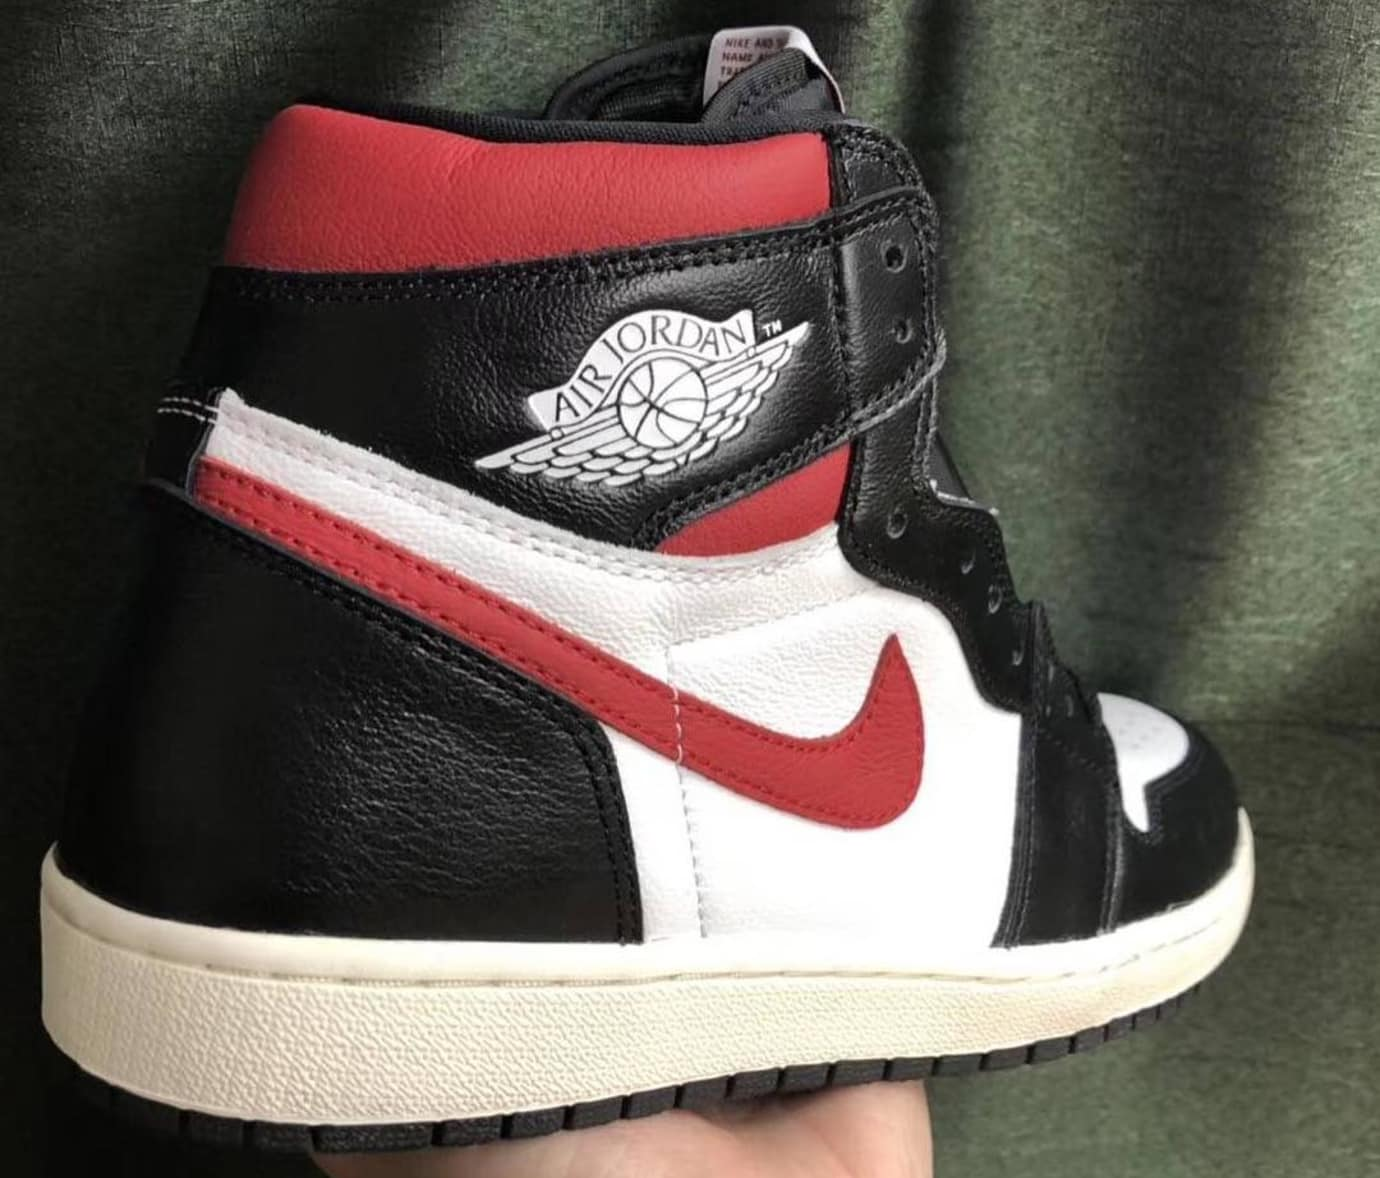 new arrival 7c6af 78929 The Air Jordan 1 Retro High OG Black White Sail-Gym Red has a white leather  upper featuring black overlays on the toe box, eye stay, heel. The lateral  and ...